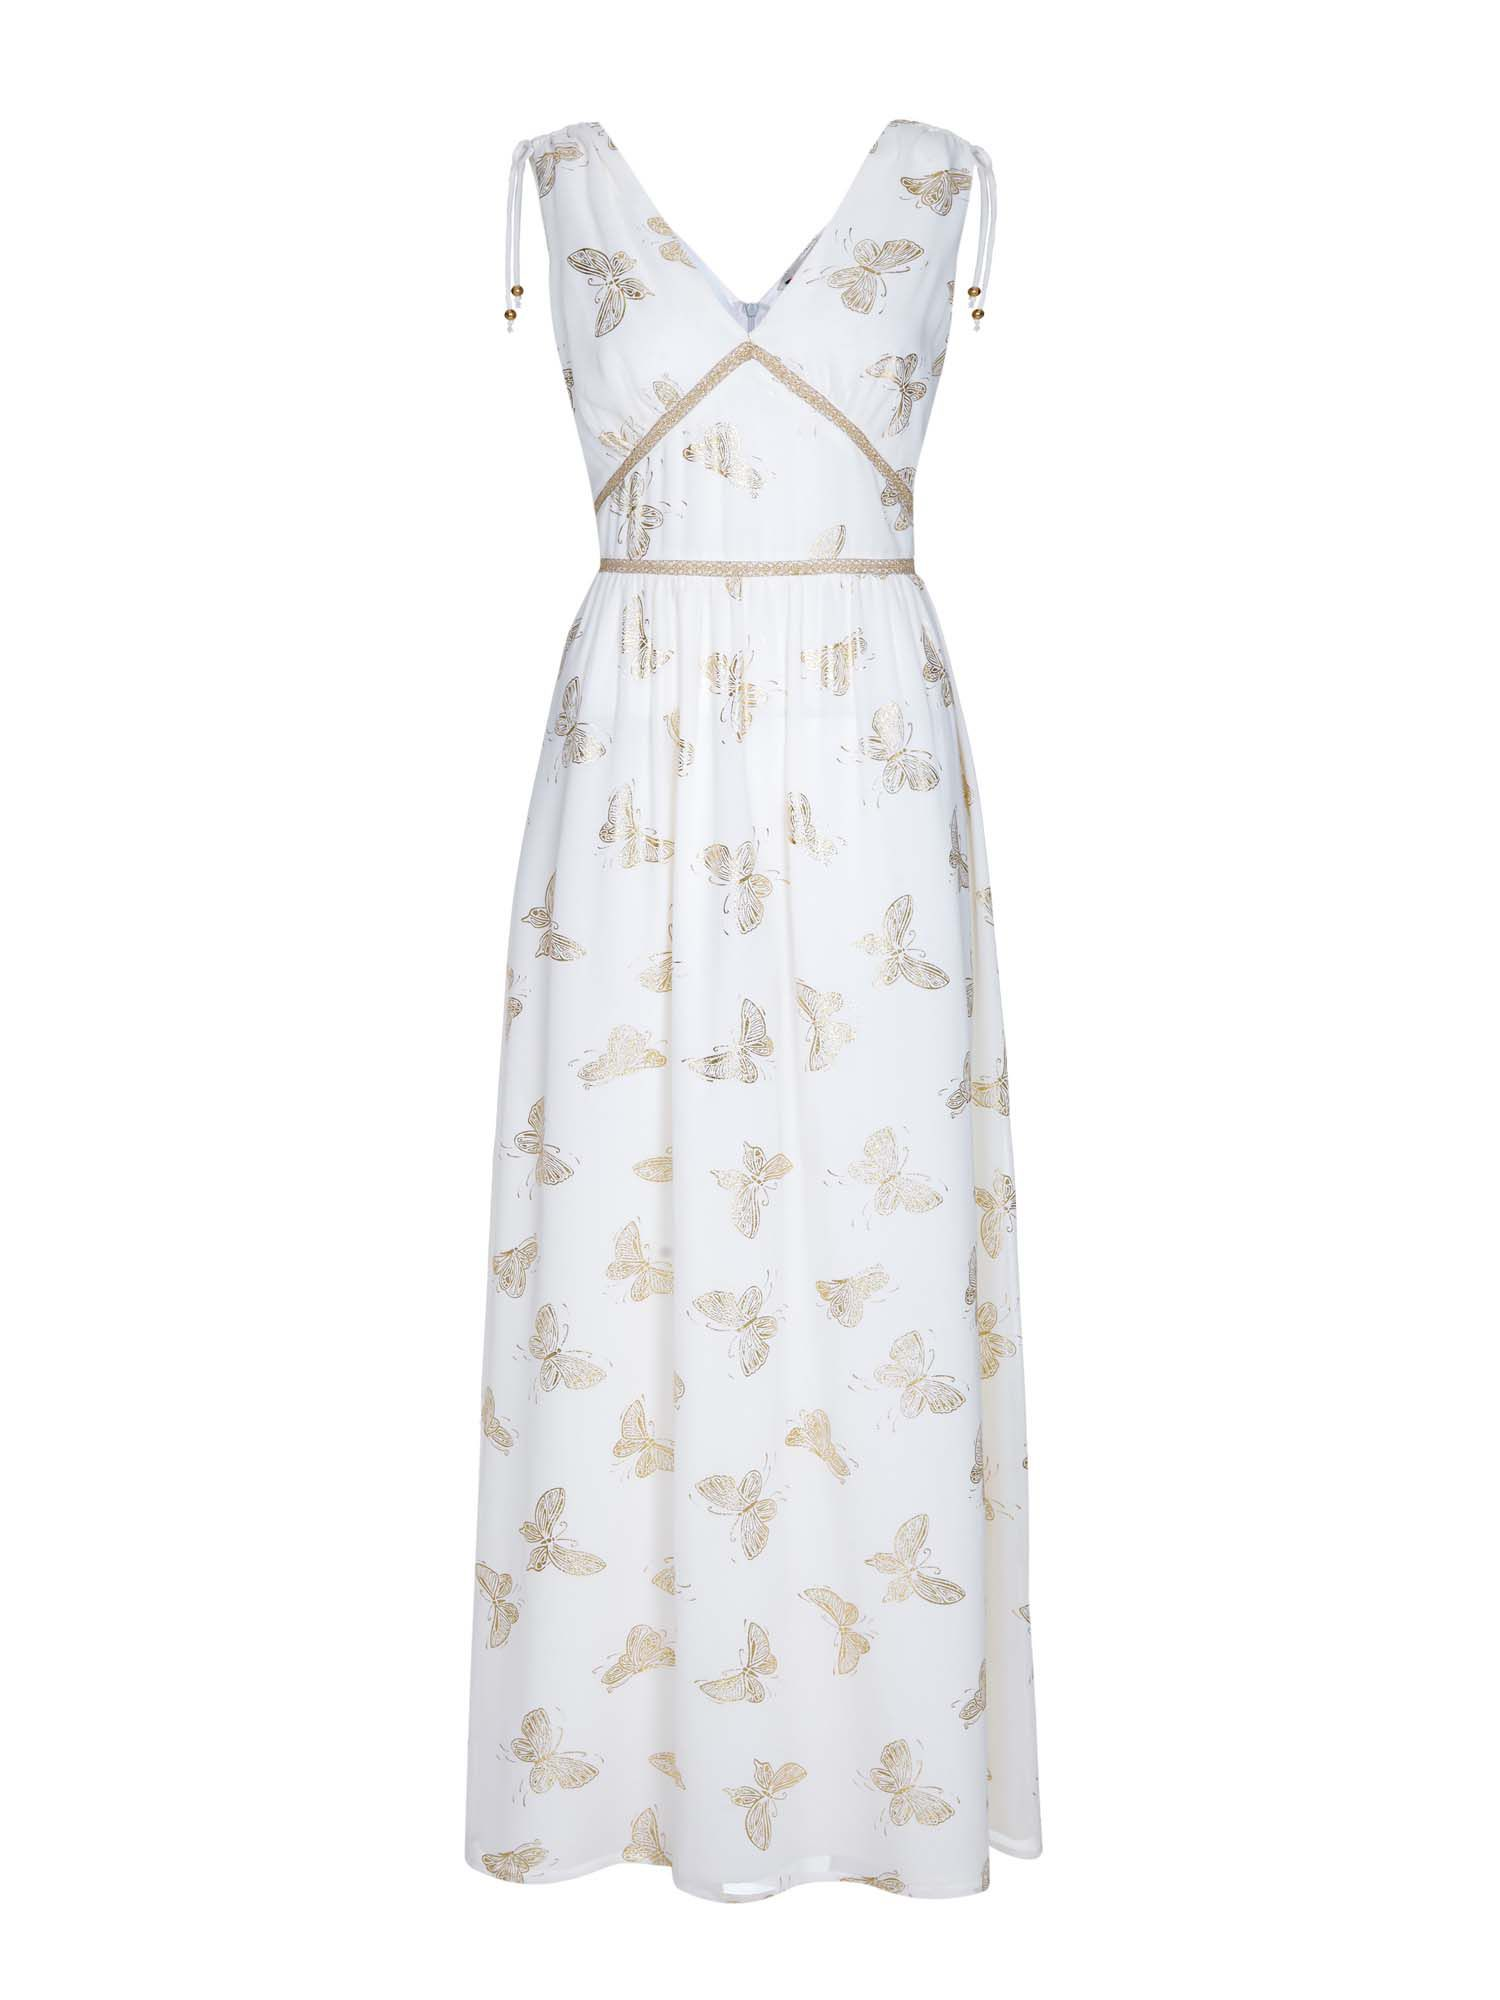 Yumi Foil Print Butterfly Dress, Cream